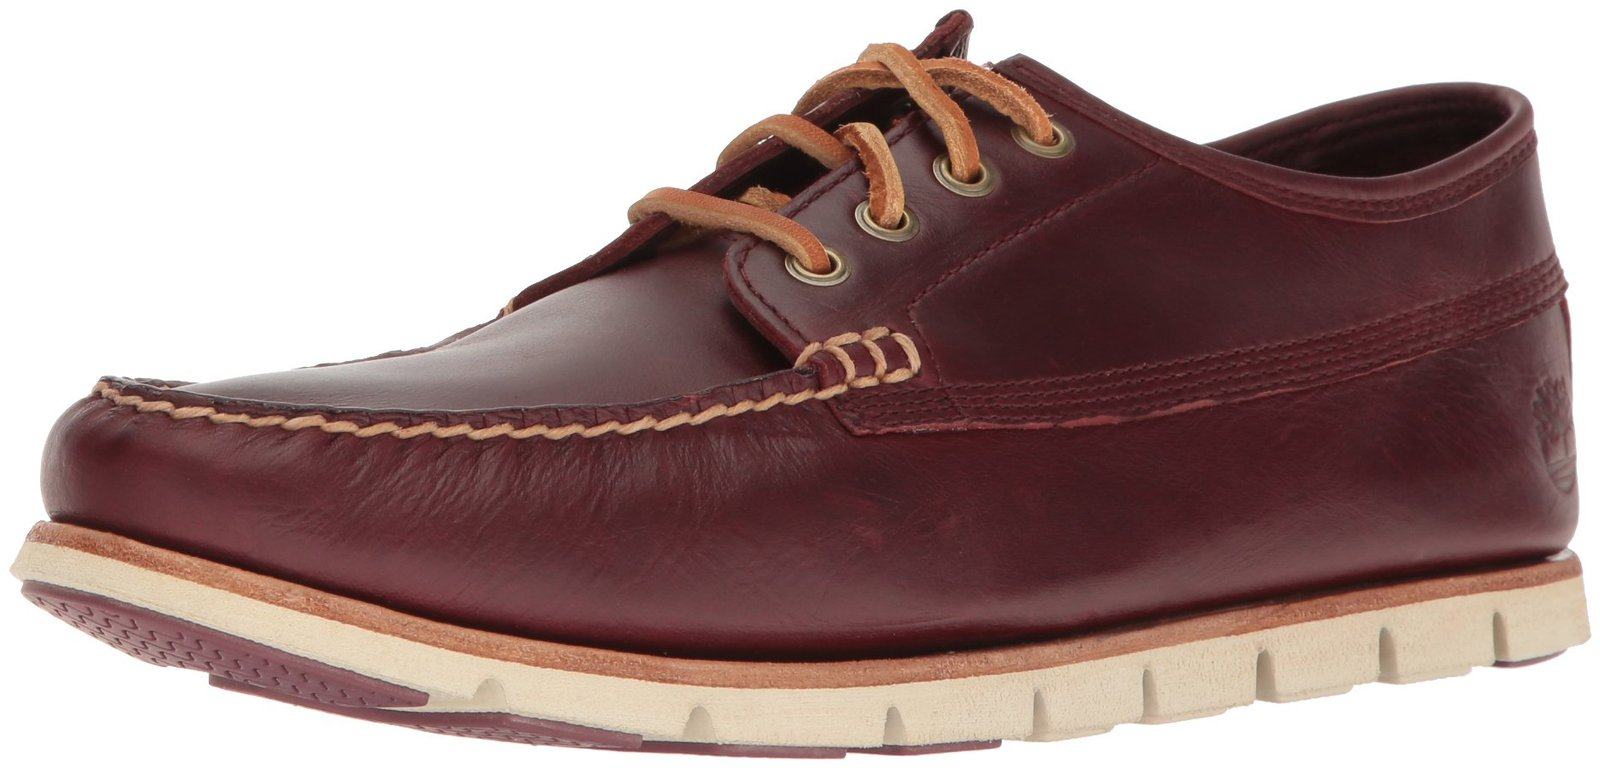 Timberland Men's Tidelands Ranger Moc Boat Shoe, Redwood Brando, 7.5 M US